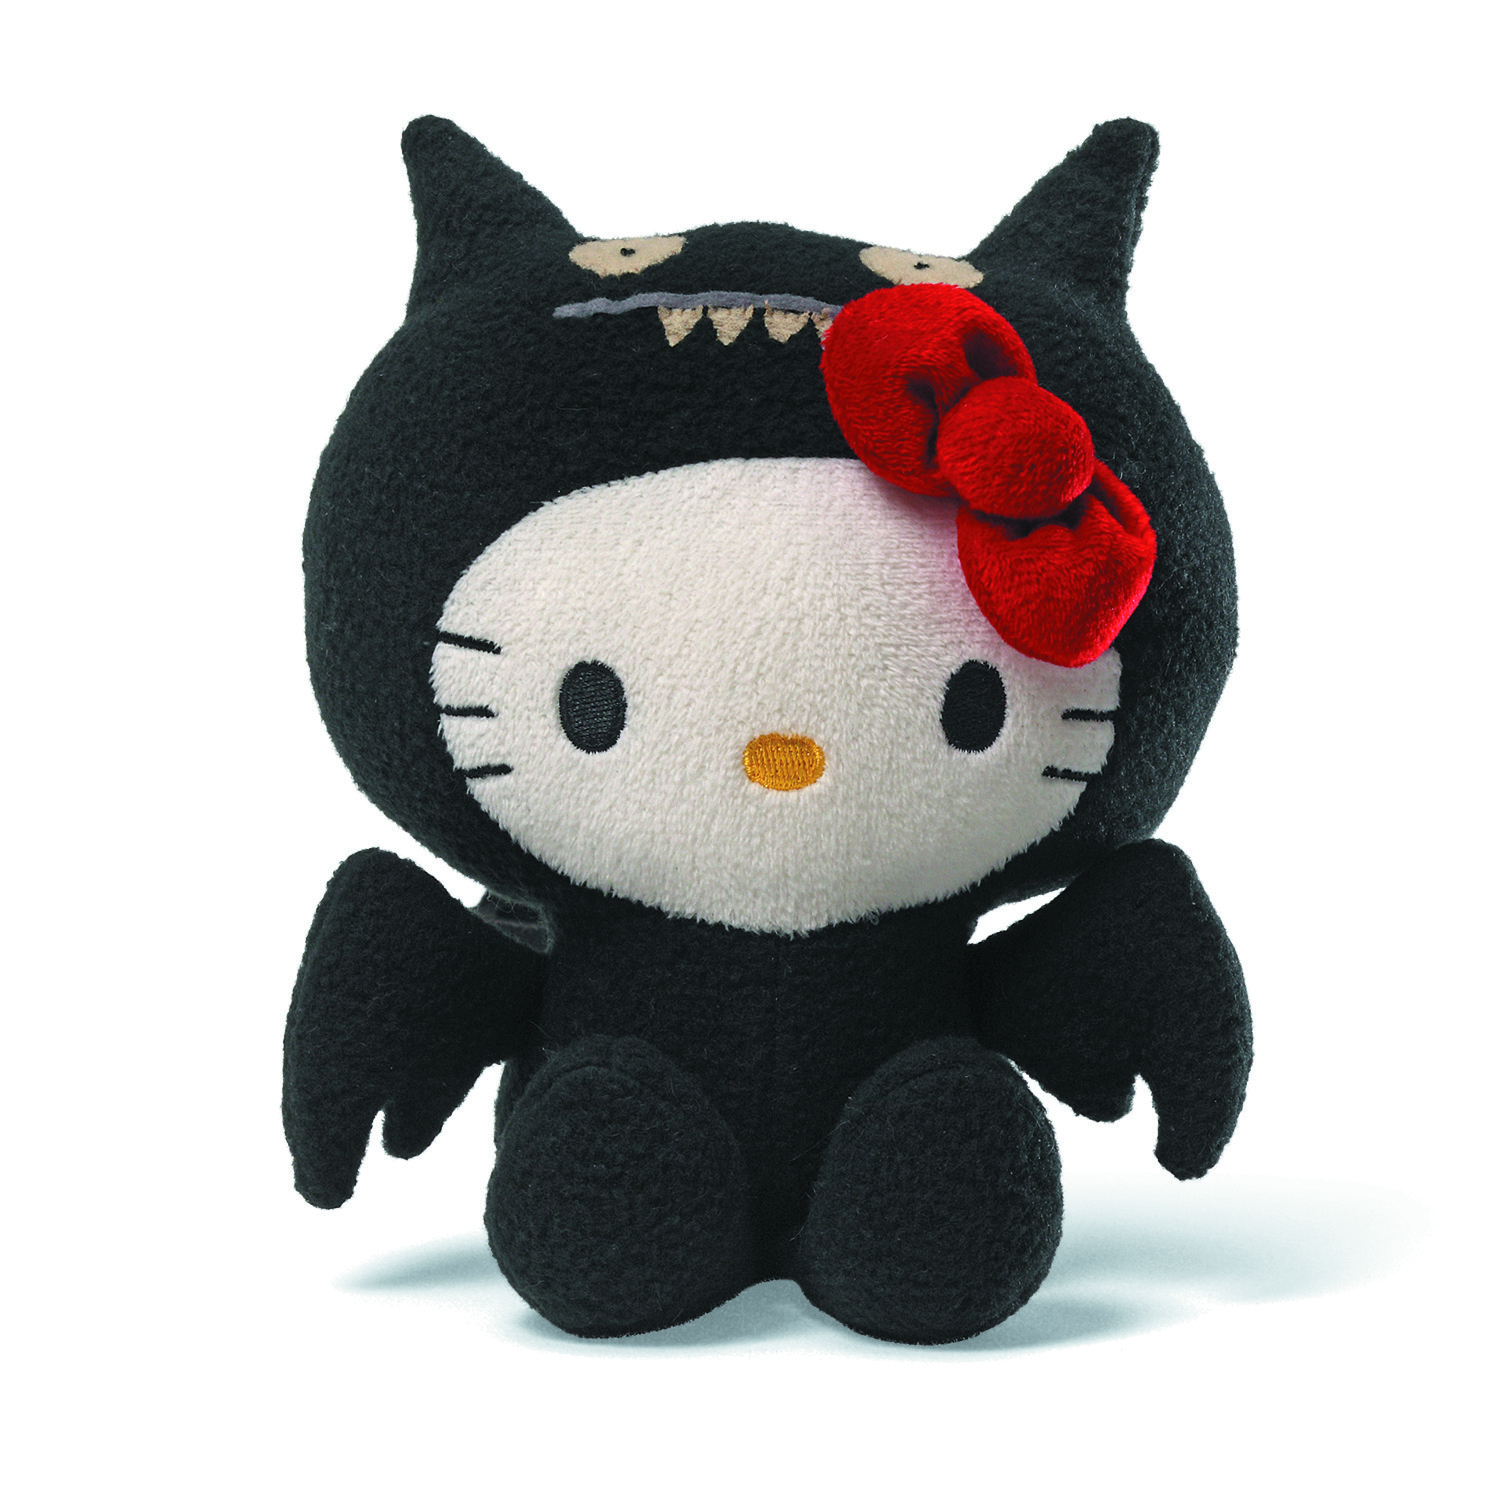 UGLYDOLL HELLO KITTY ICE BAT 7IN PLUSH